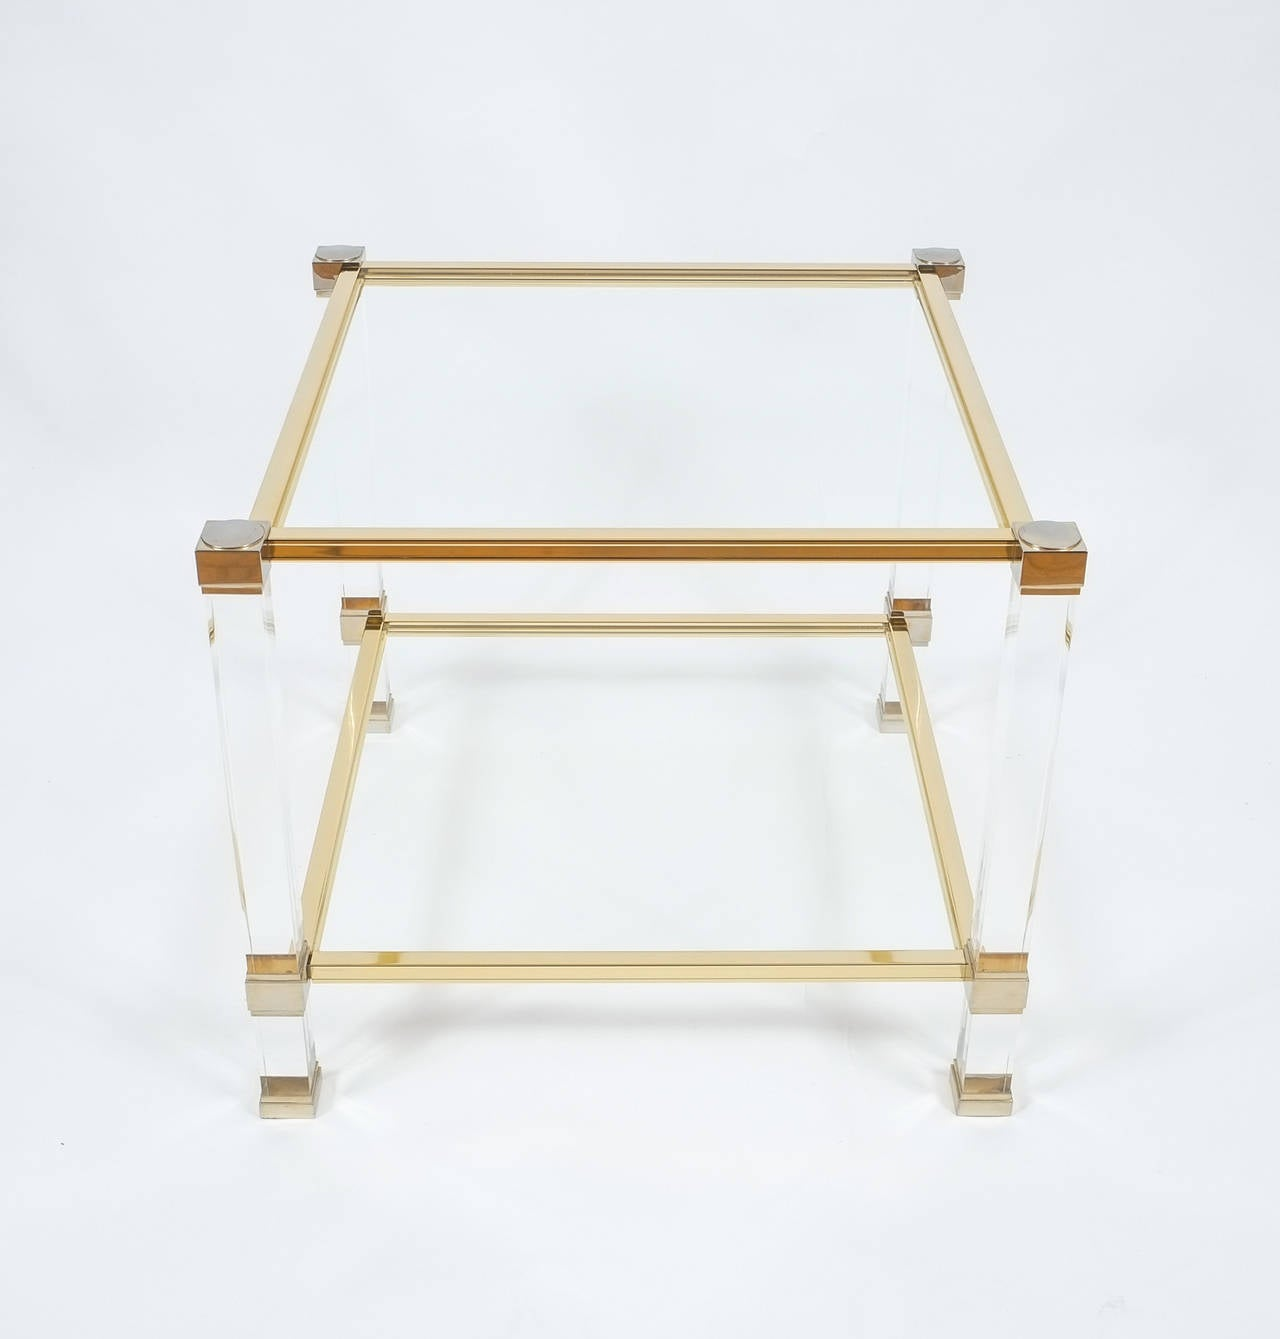 Late 20th Century Pair of Lucite and Brass Signed Coffee Tables by Pierre Vandel, 1970